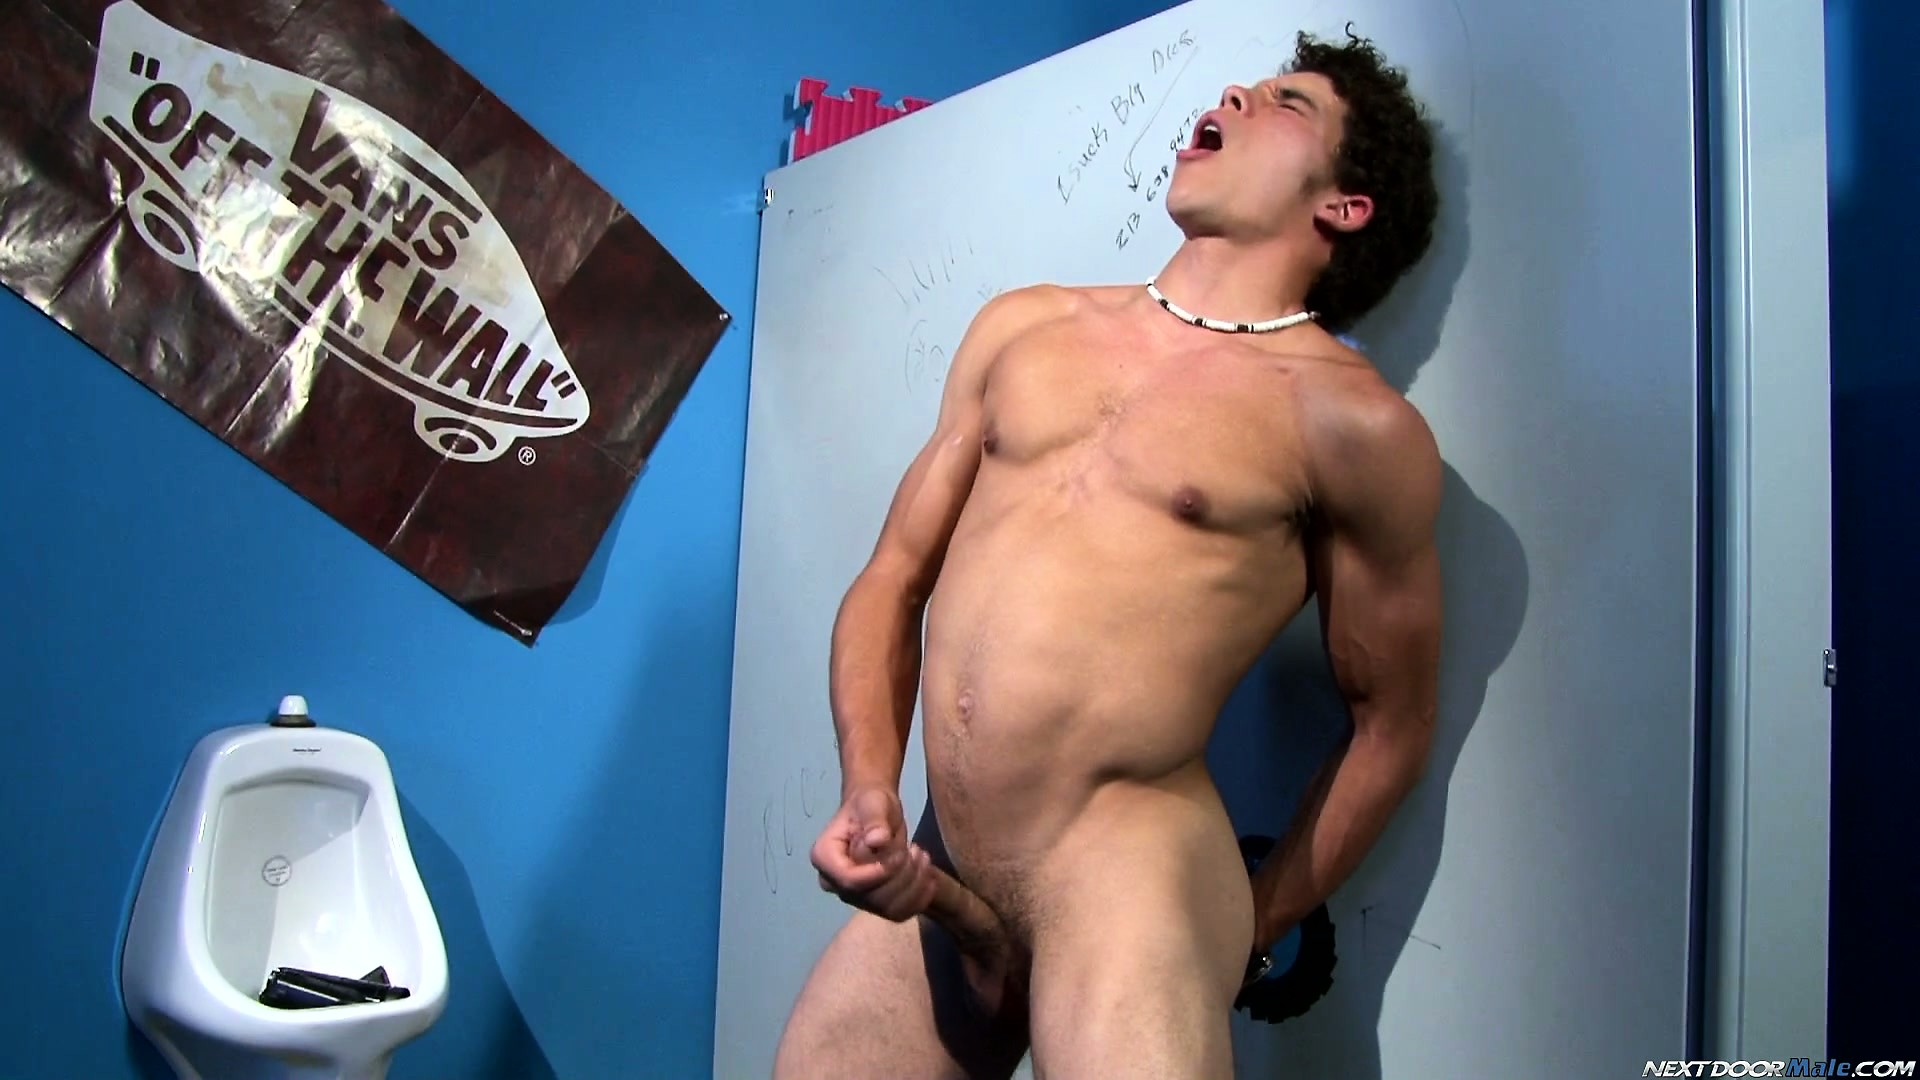 Porno Video of Austin Merrick Fingers His Ass And Beats His Meat In The Bathroom